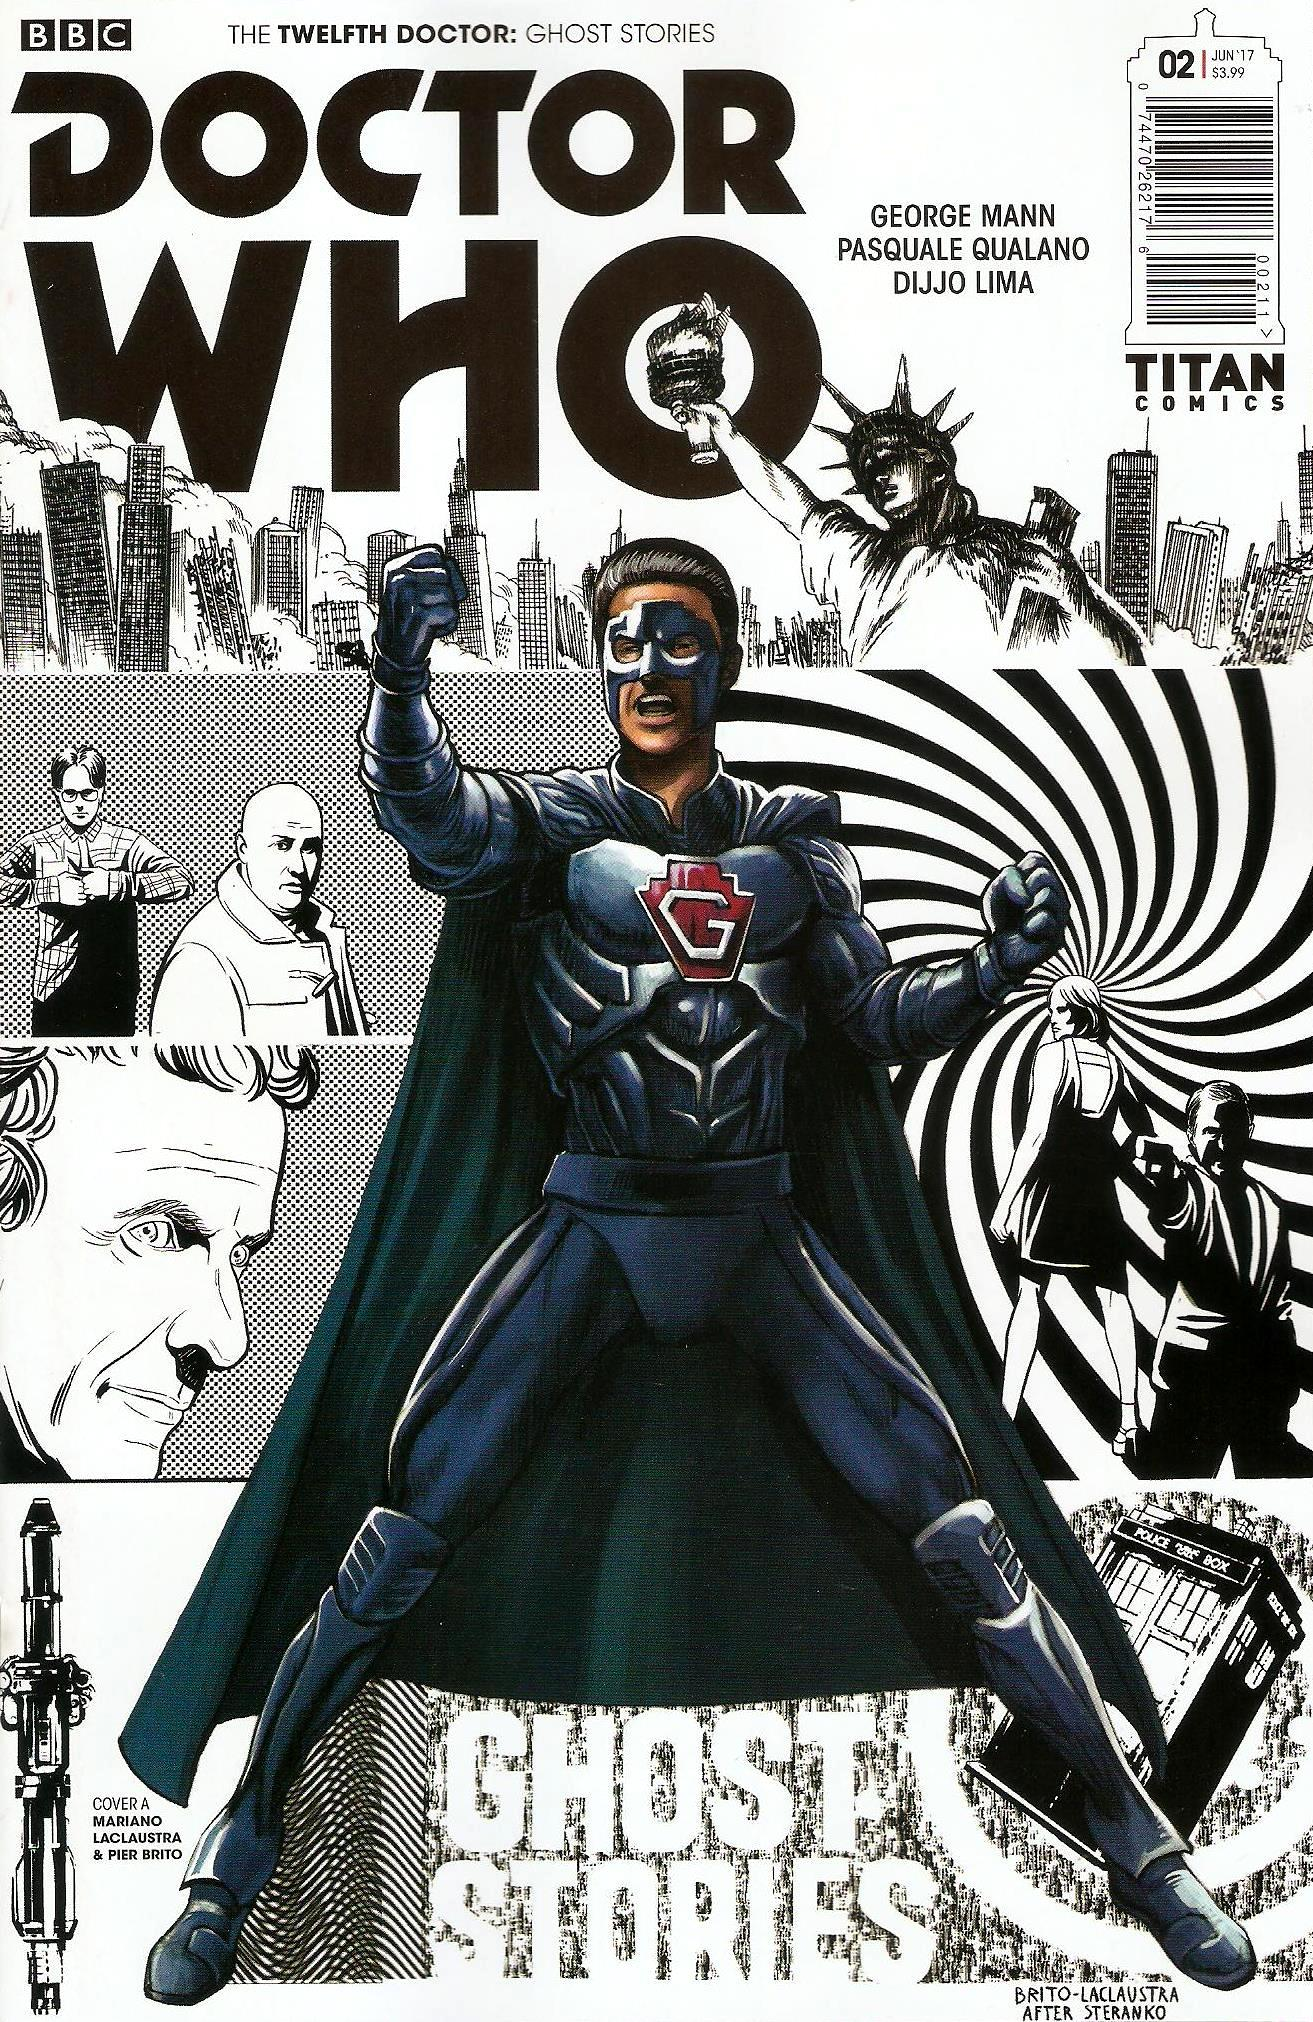 Twelfth doctor ghost stories issue 2a